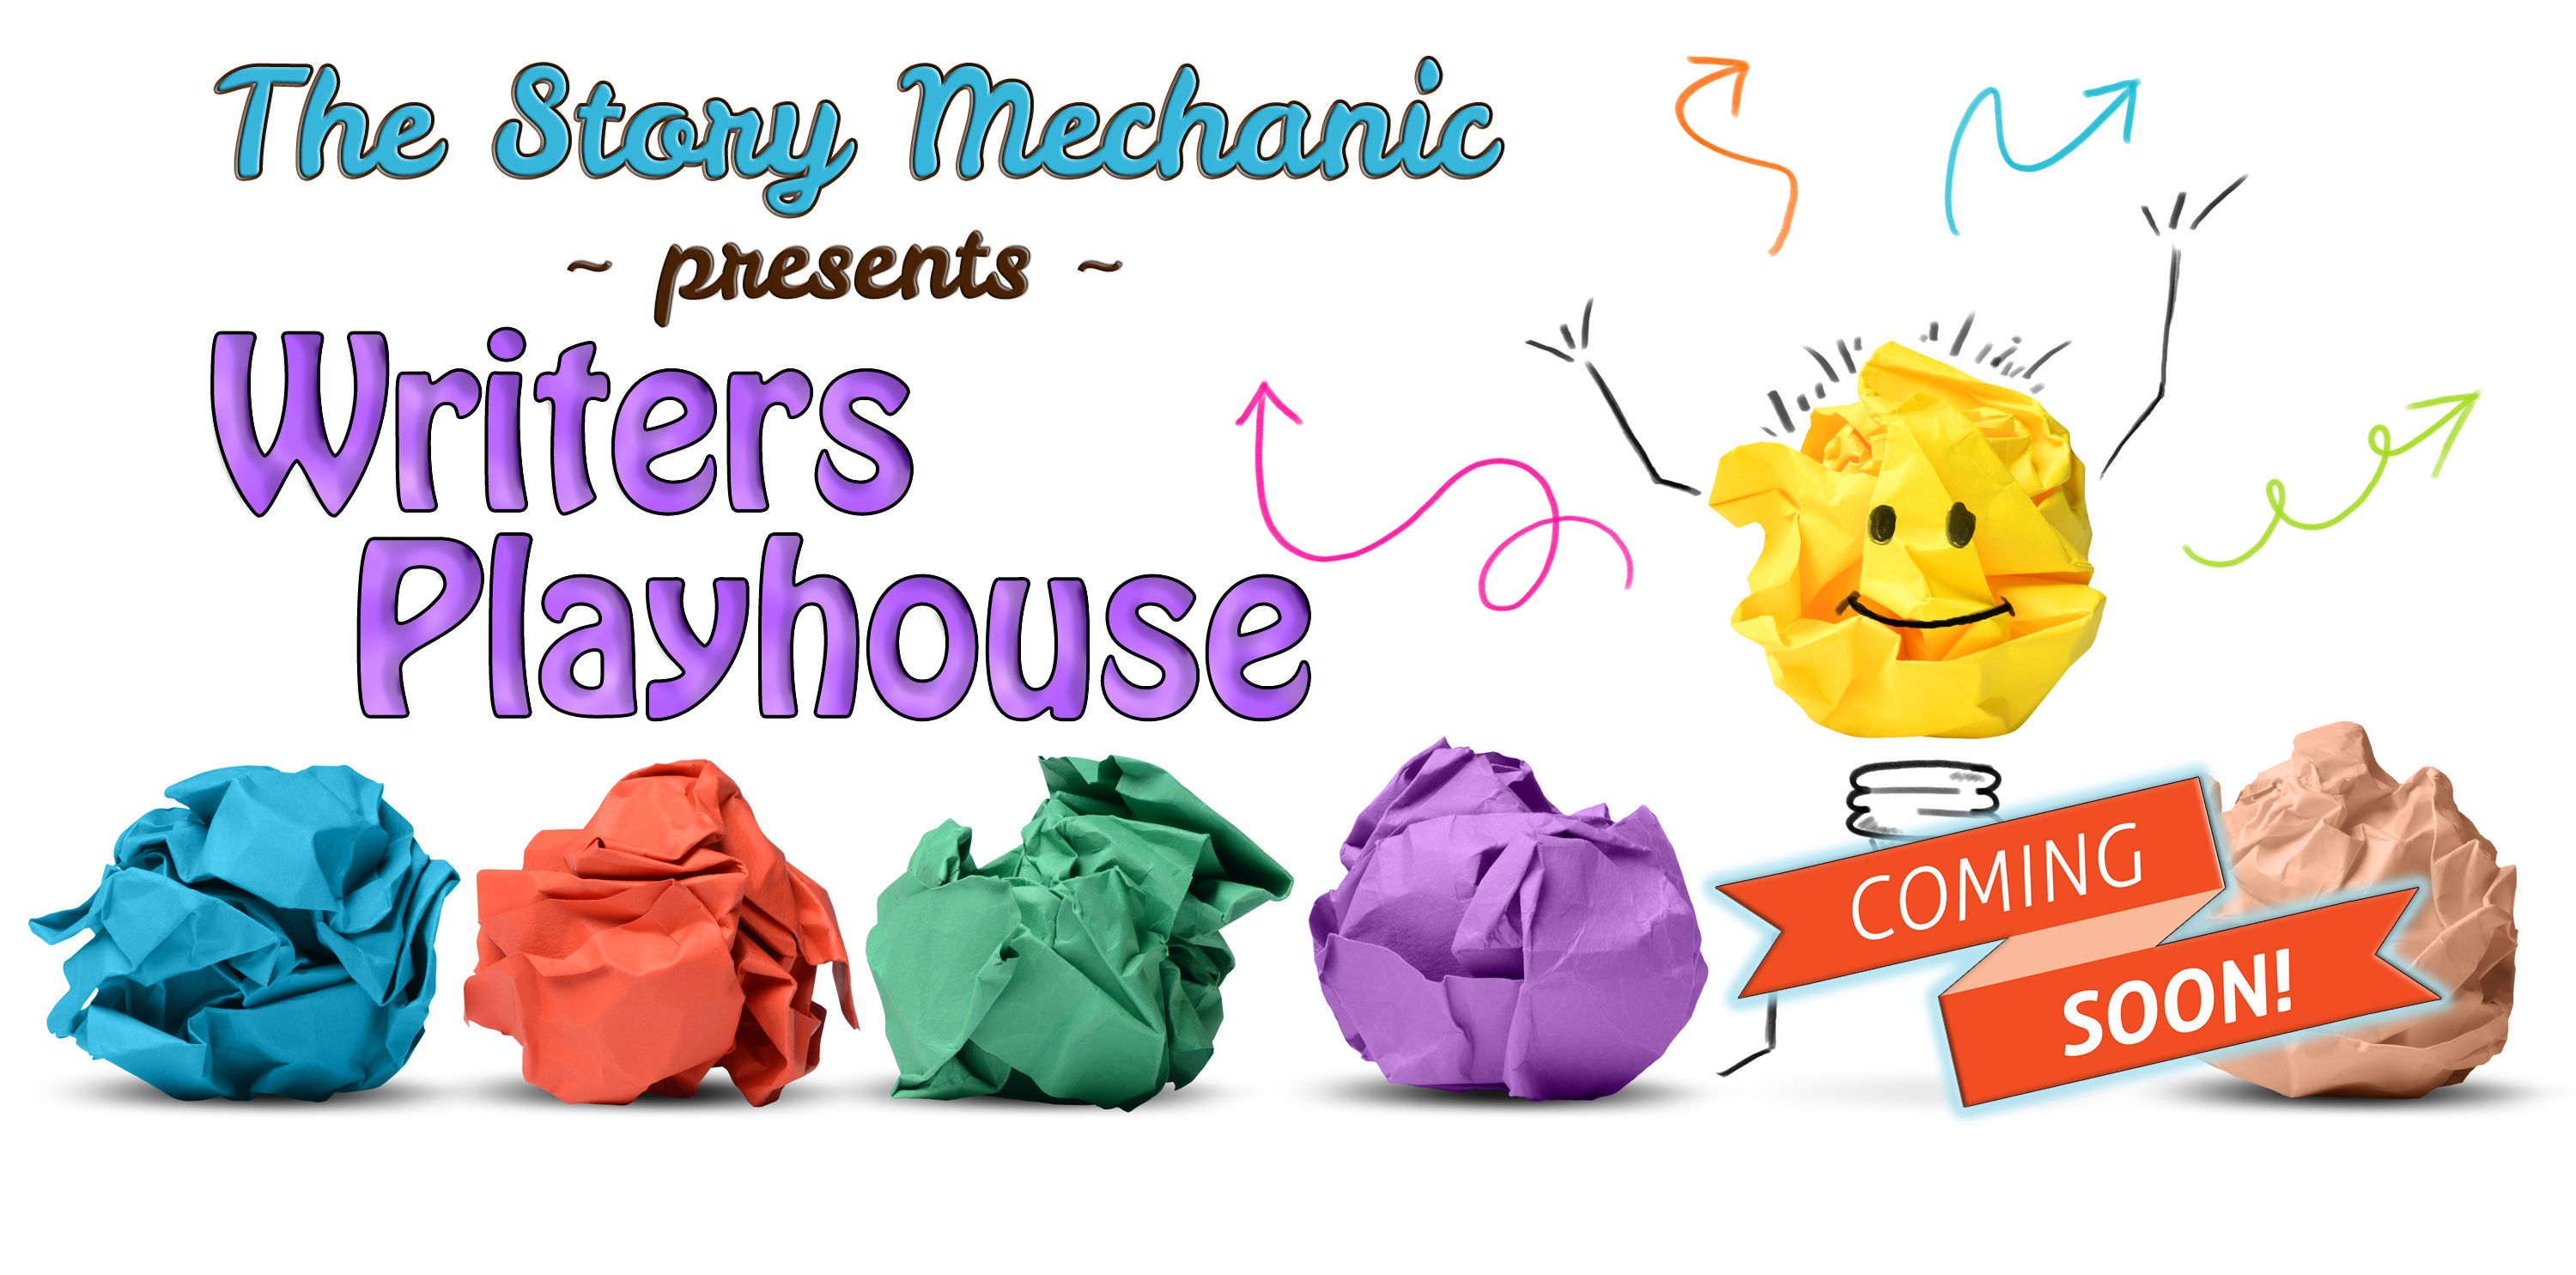 The Story Mechanic presents Writers Playhouse